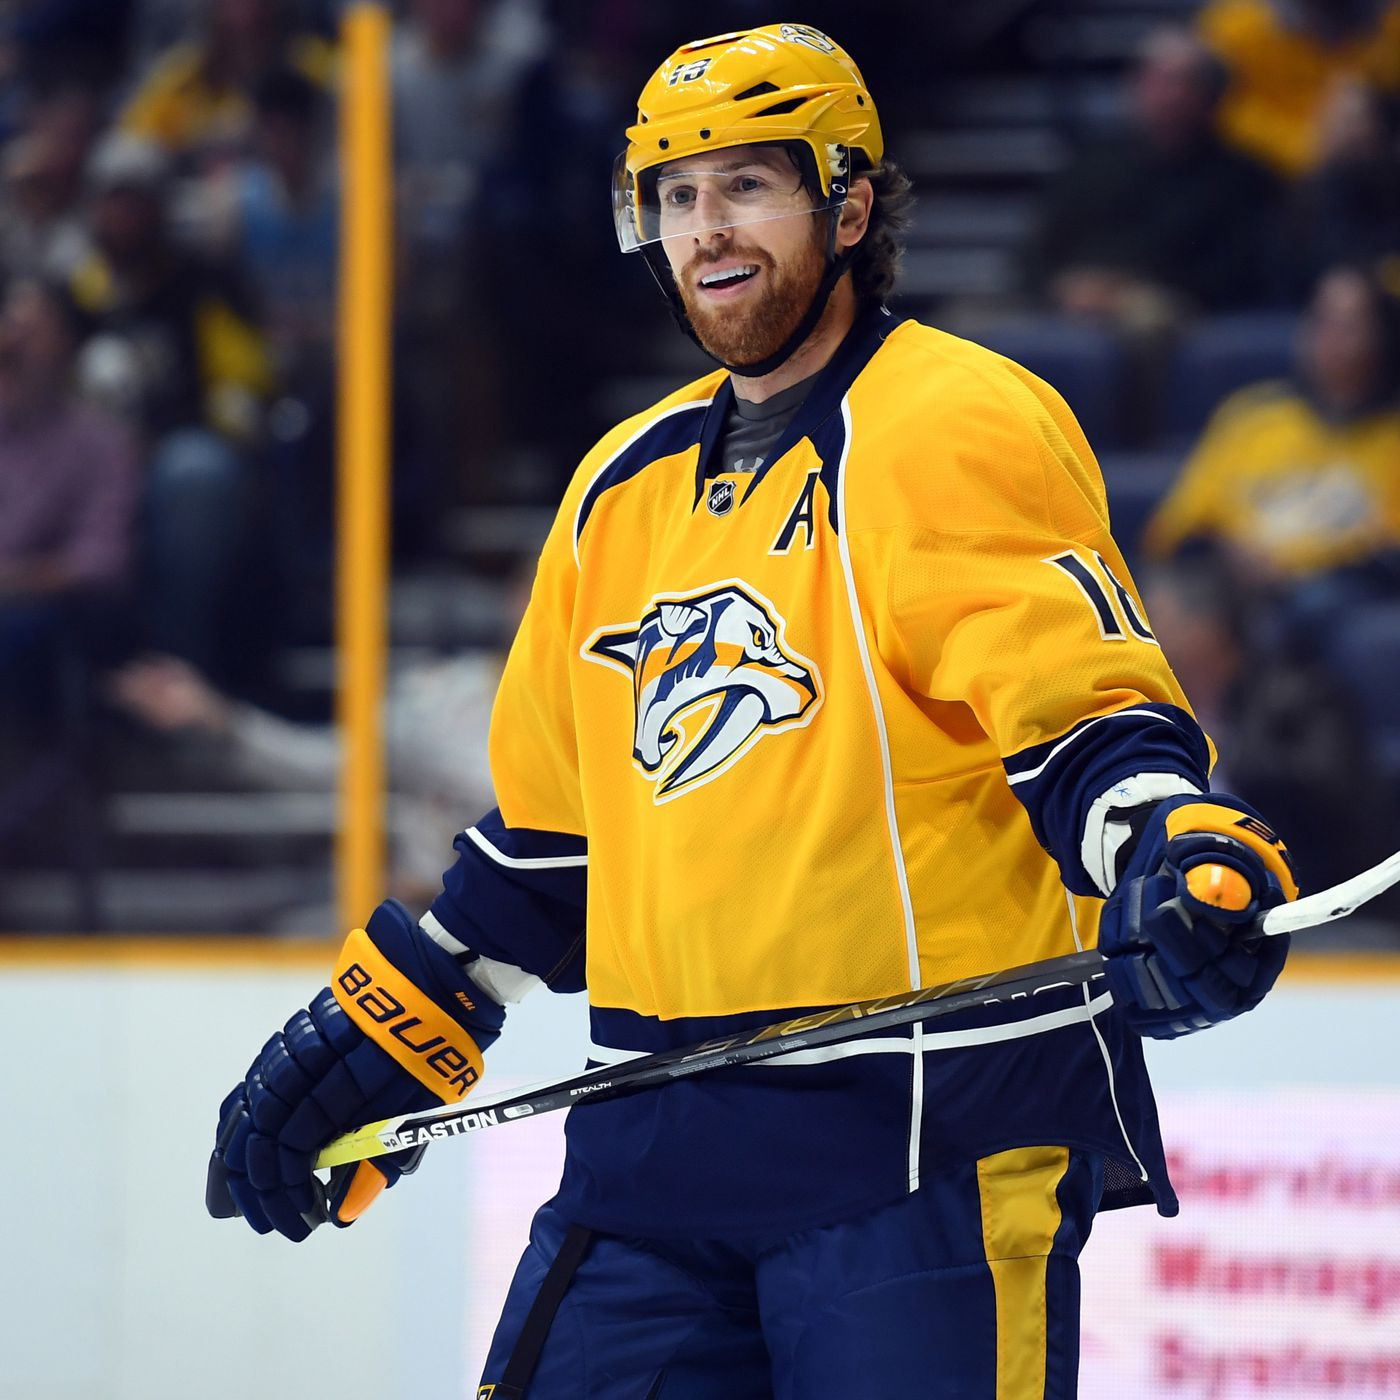 lowest price 3ceb7 642ce Nashville Predators Place James Neal On Injured Reserve - On ...